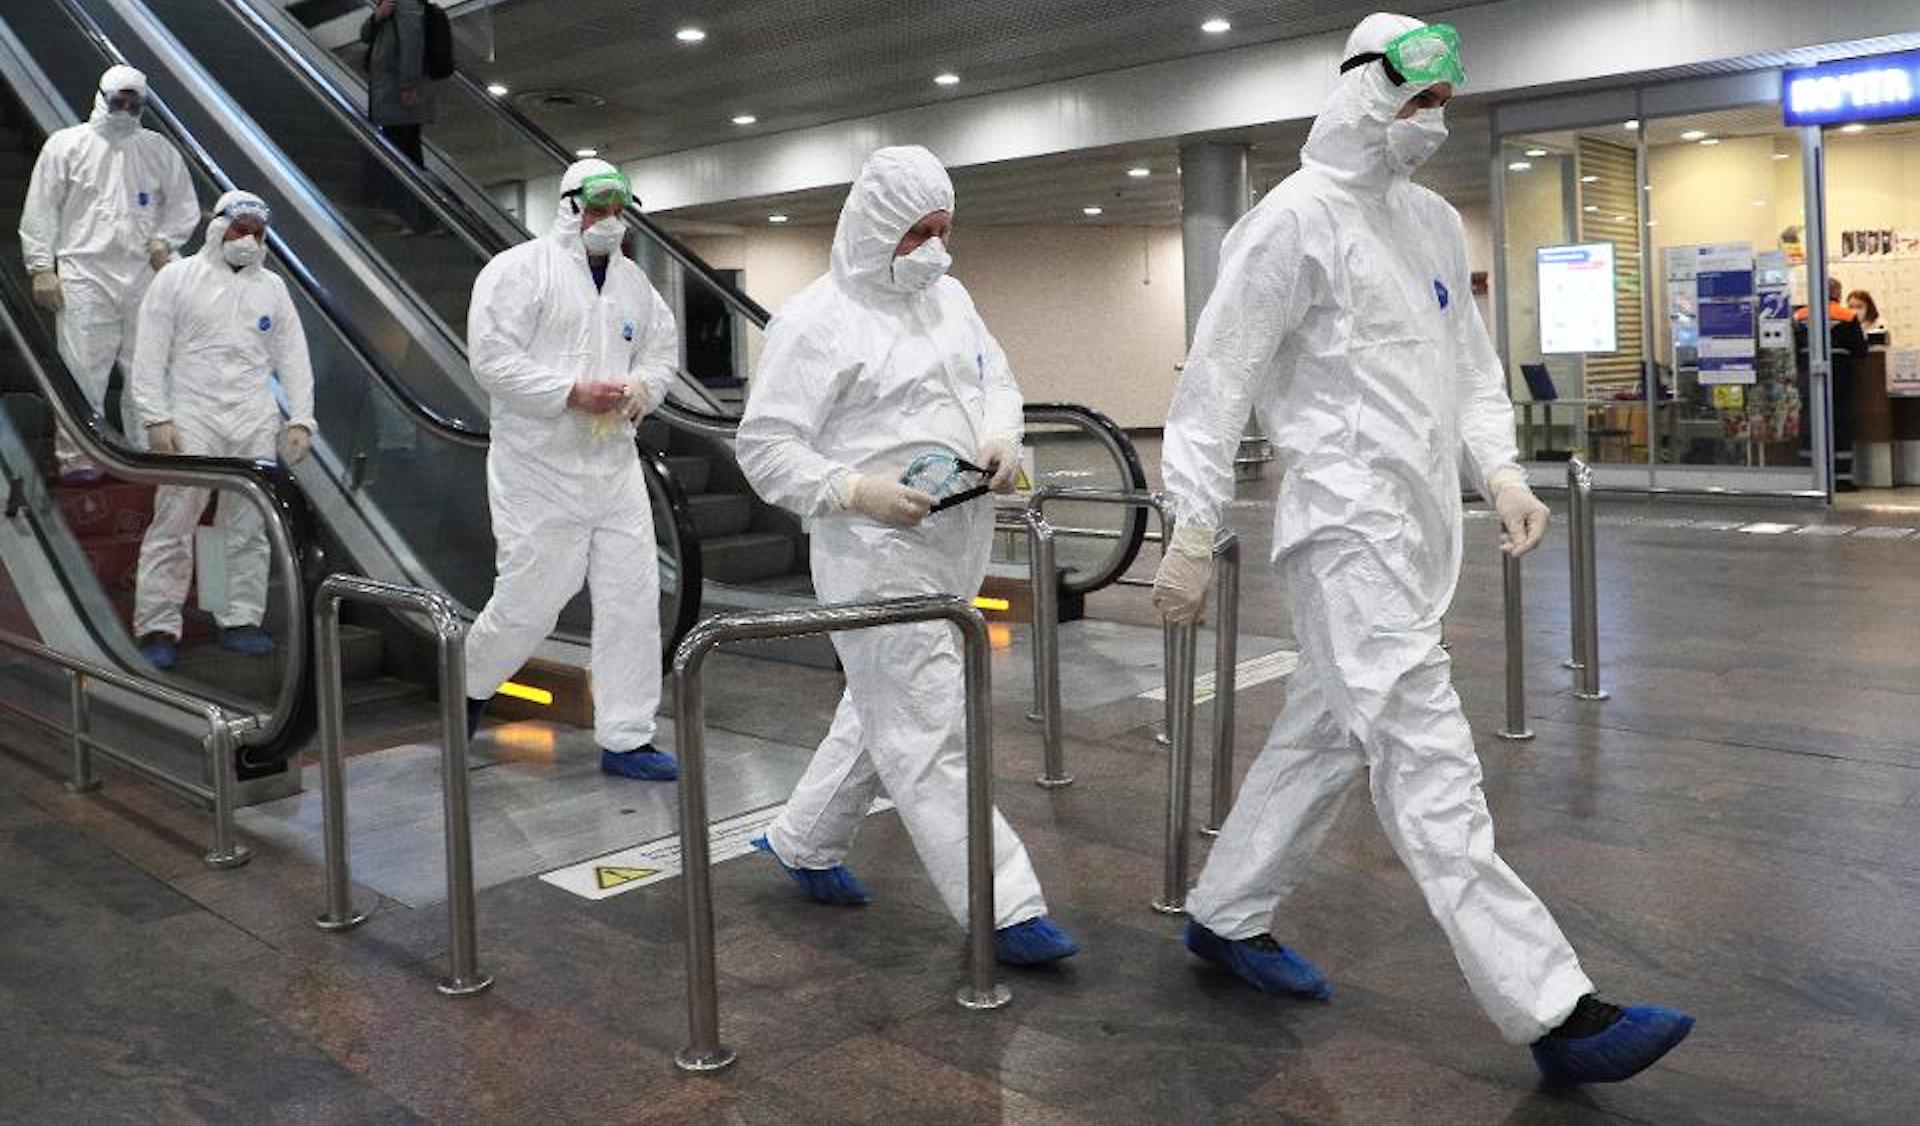 The Truth Vindicated: Wearing A Surgical Mask Does 0.0 For Health But Is A Bonanza For The Deep State